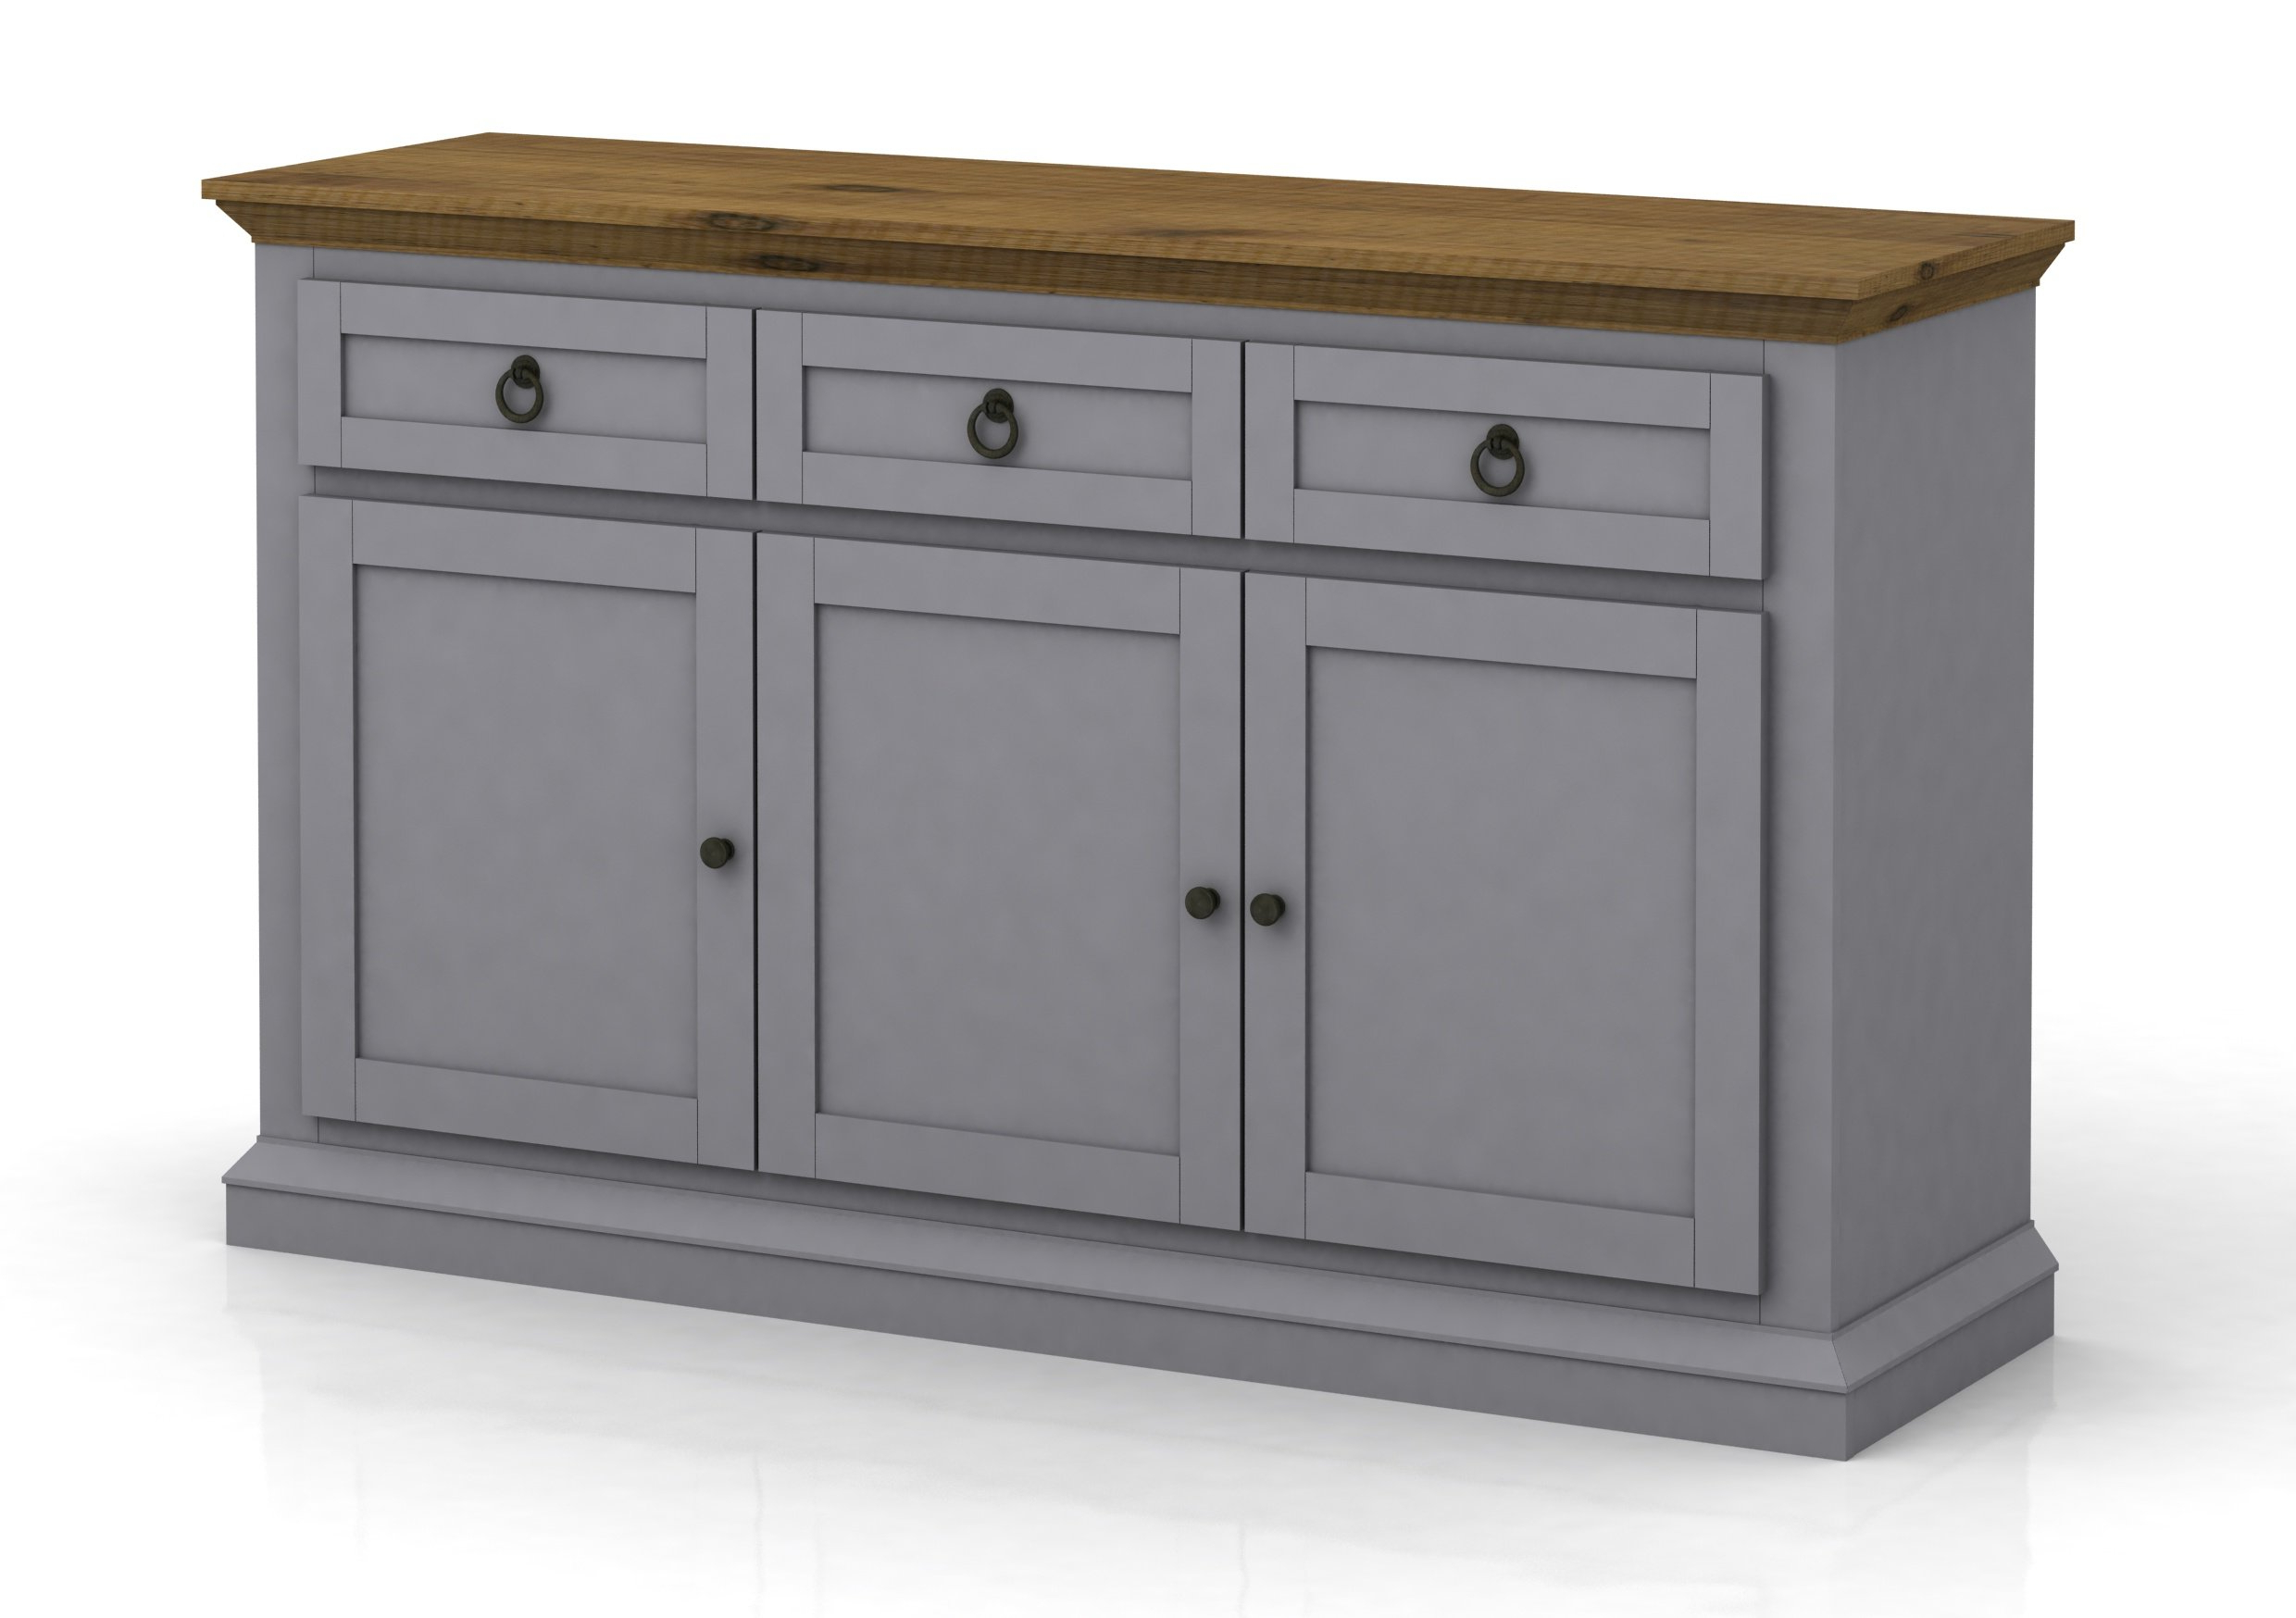 Herbert Sideboard With Regard To Amityville Wood Sideboards (View 19 of 20)